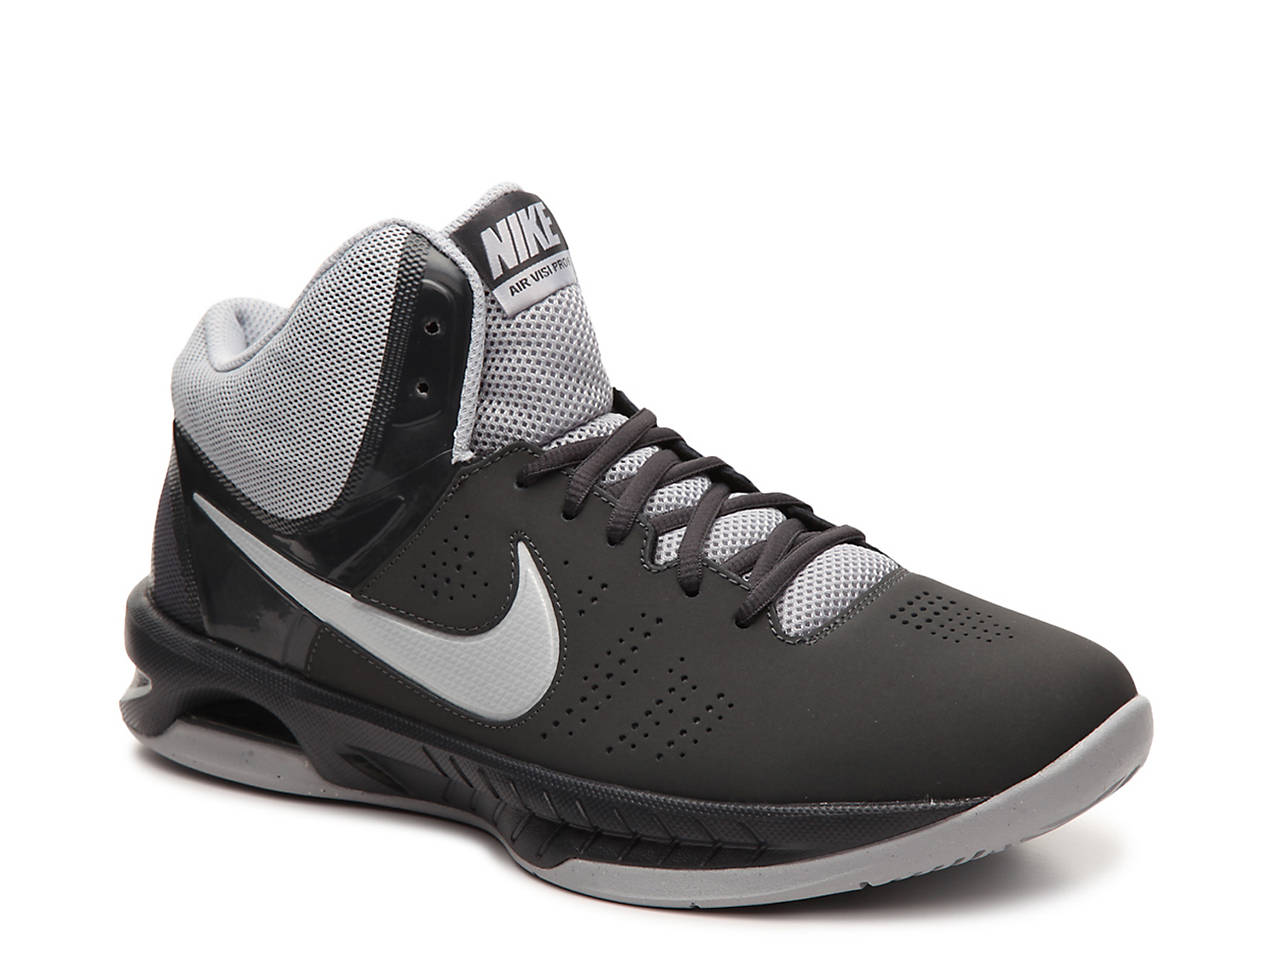 3e2dfe7effa4 Nike Air Visi Pro VI Basketball Shoe - Men s Men s Shoes